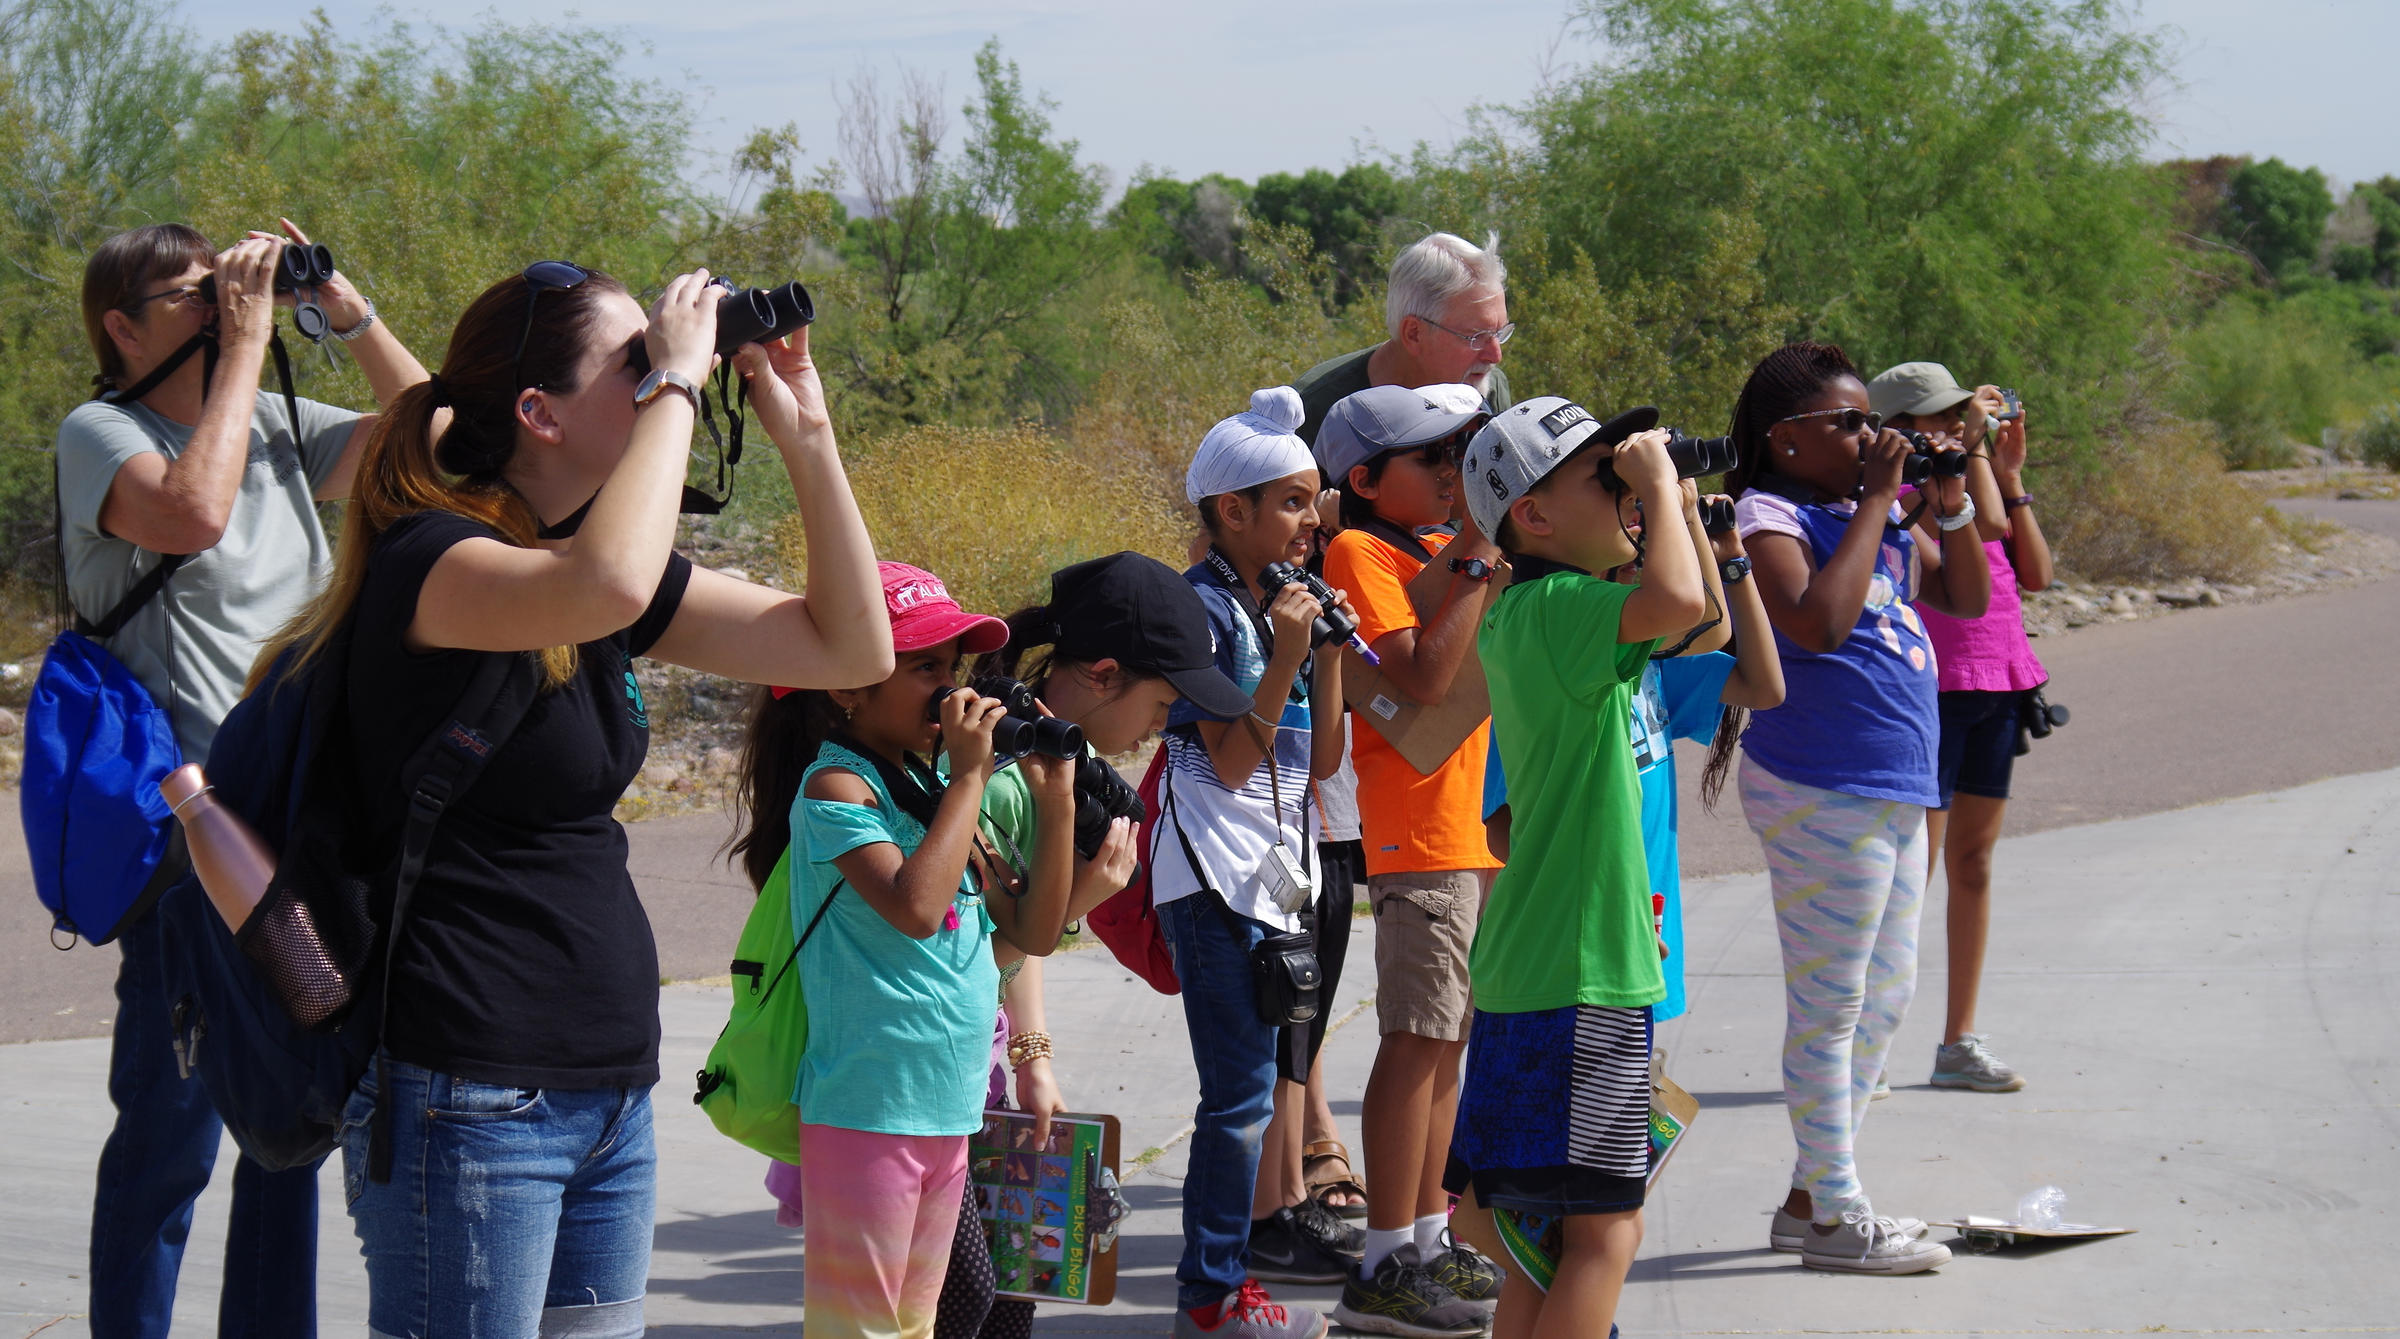 A group of students with chaperones look at a bird with binoculars during a field trip.